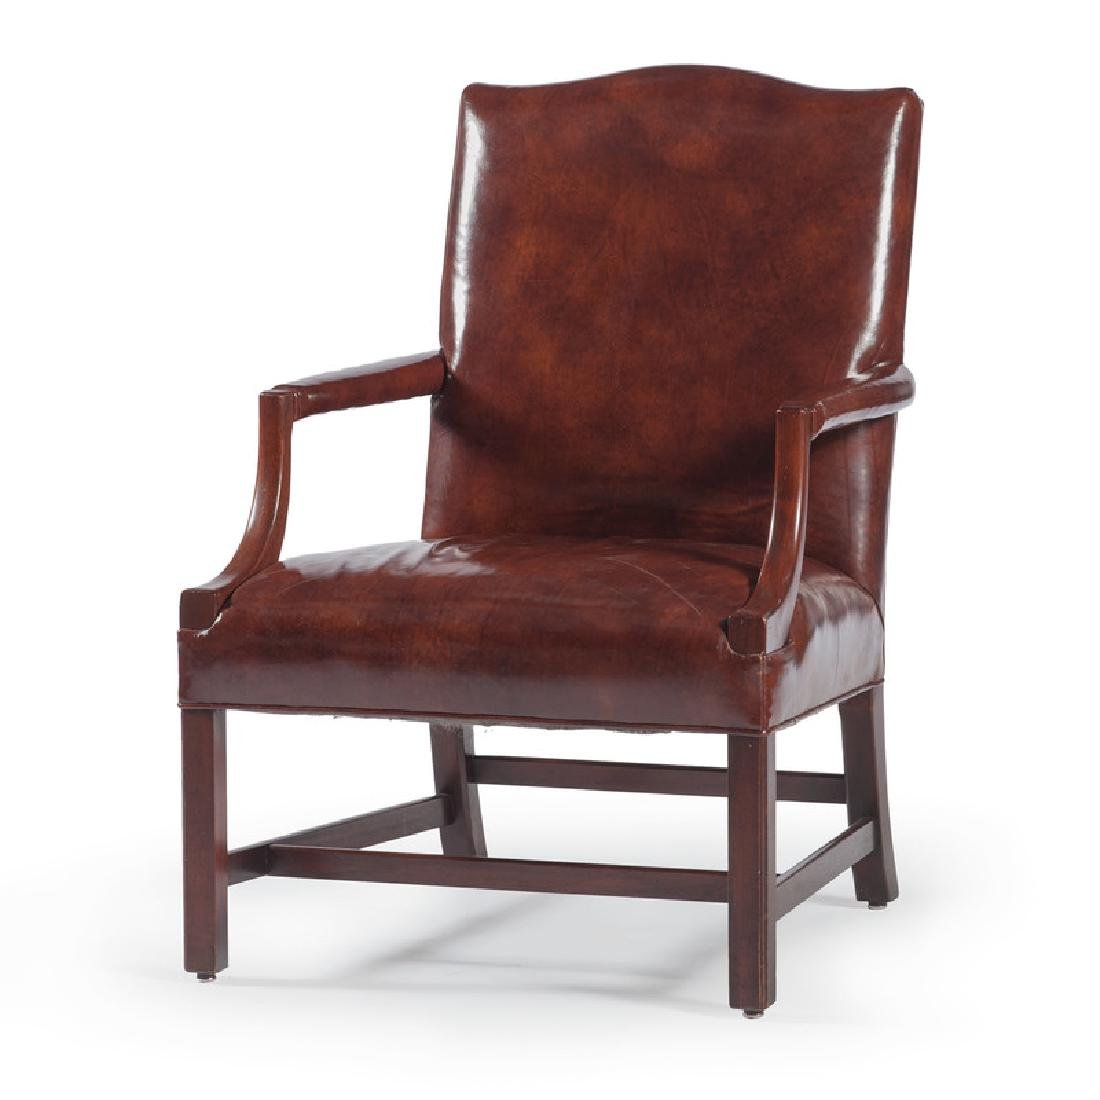 Chippendale-style Leather Armchair